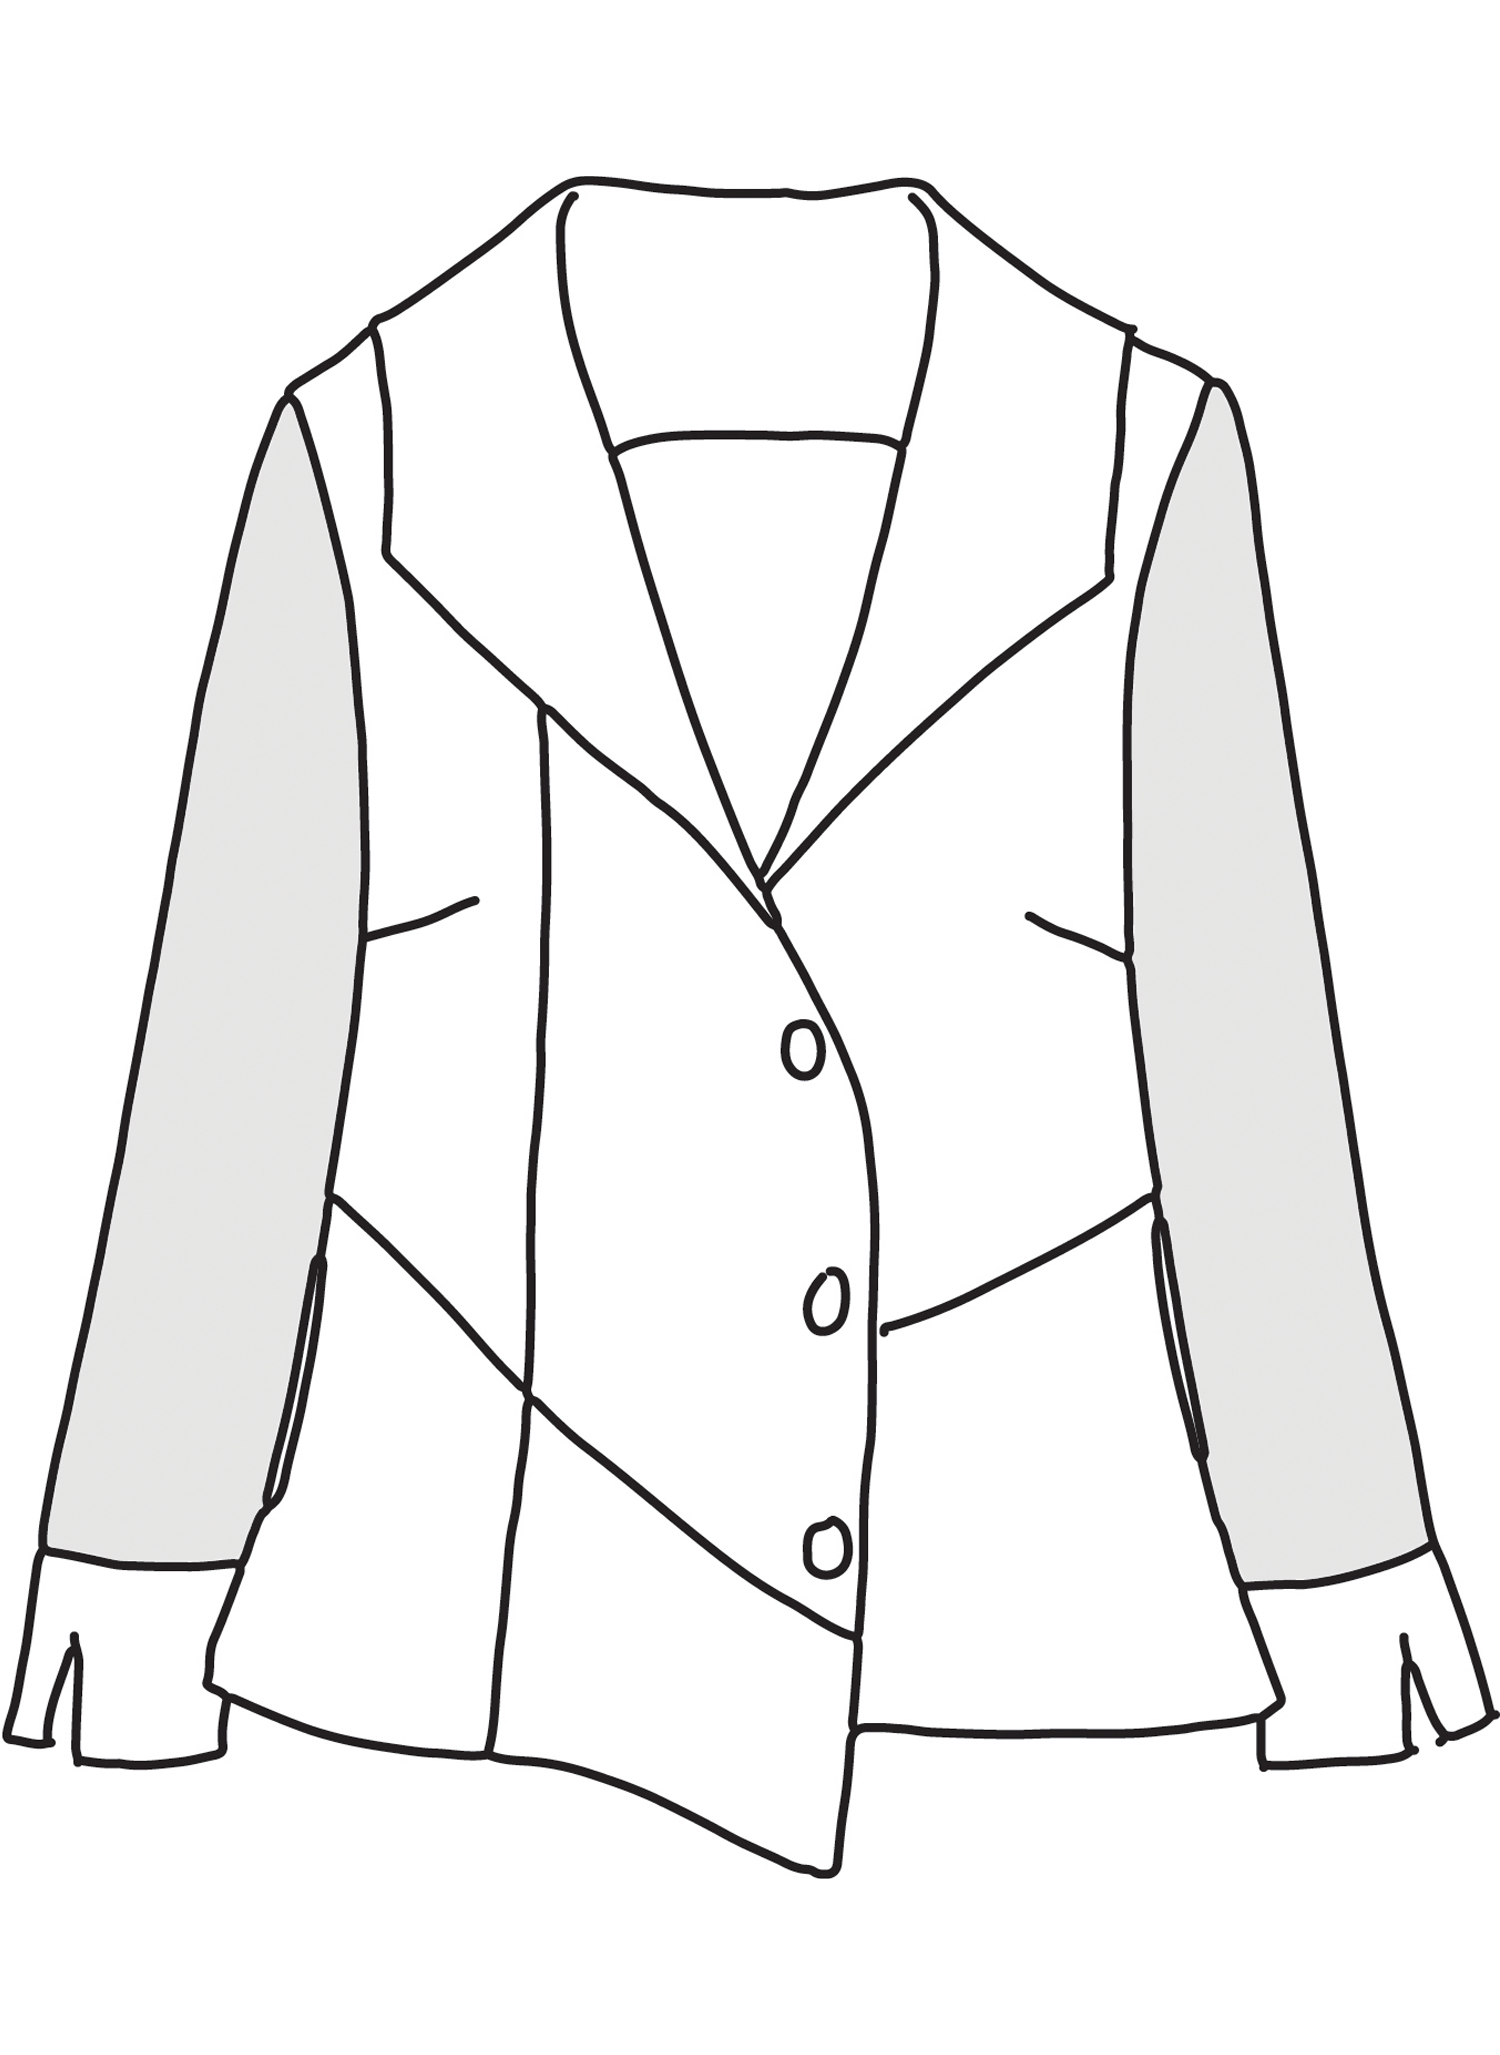 Chelsea Jacket sketch image